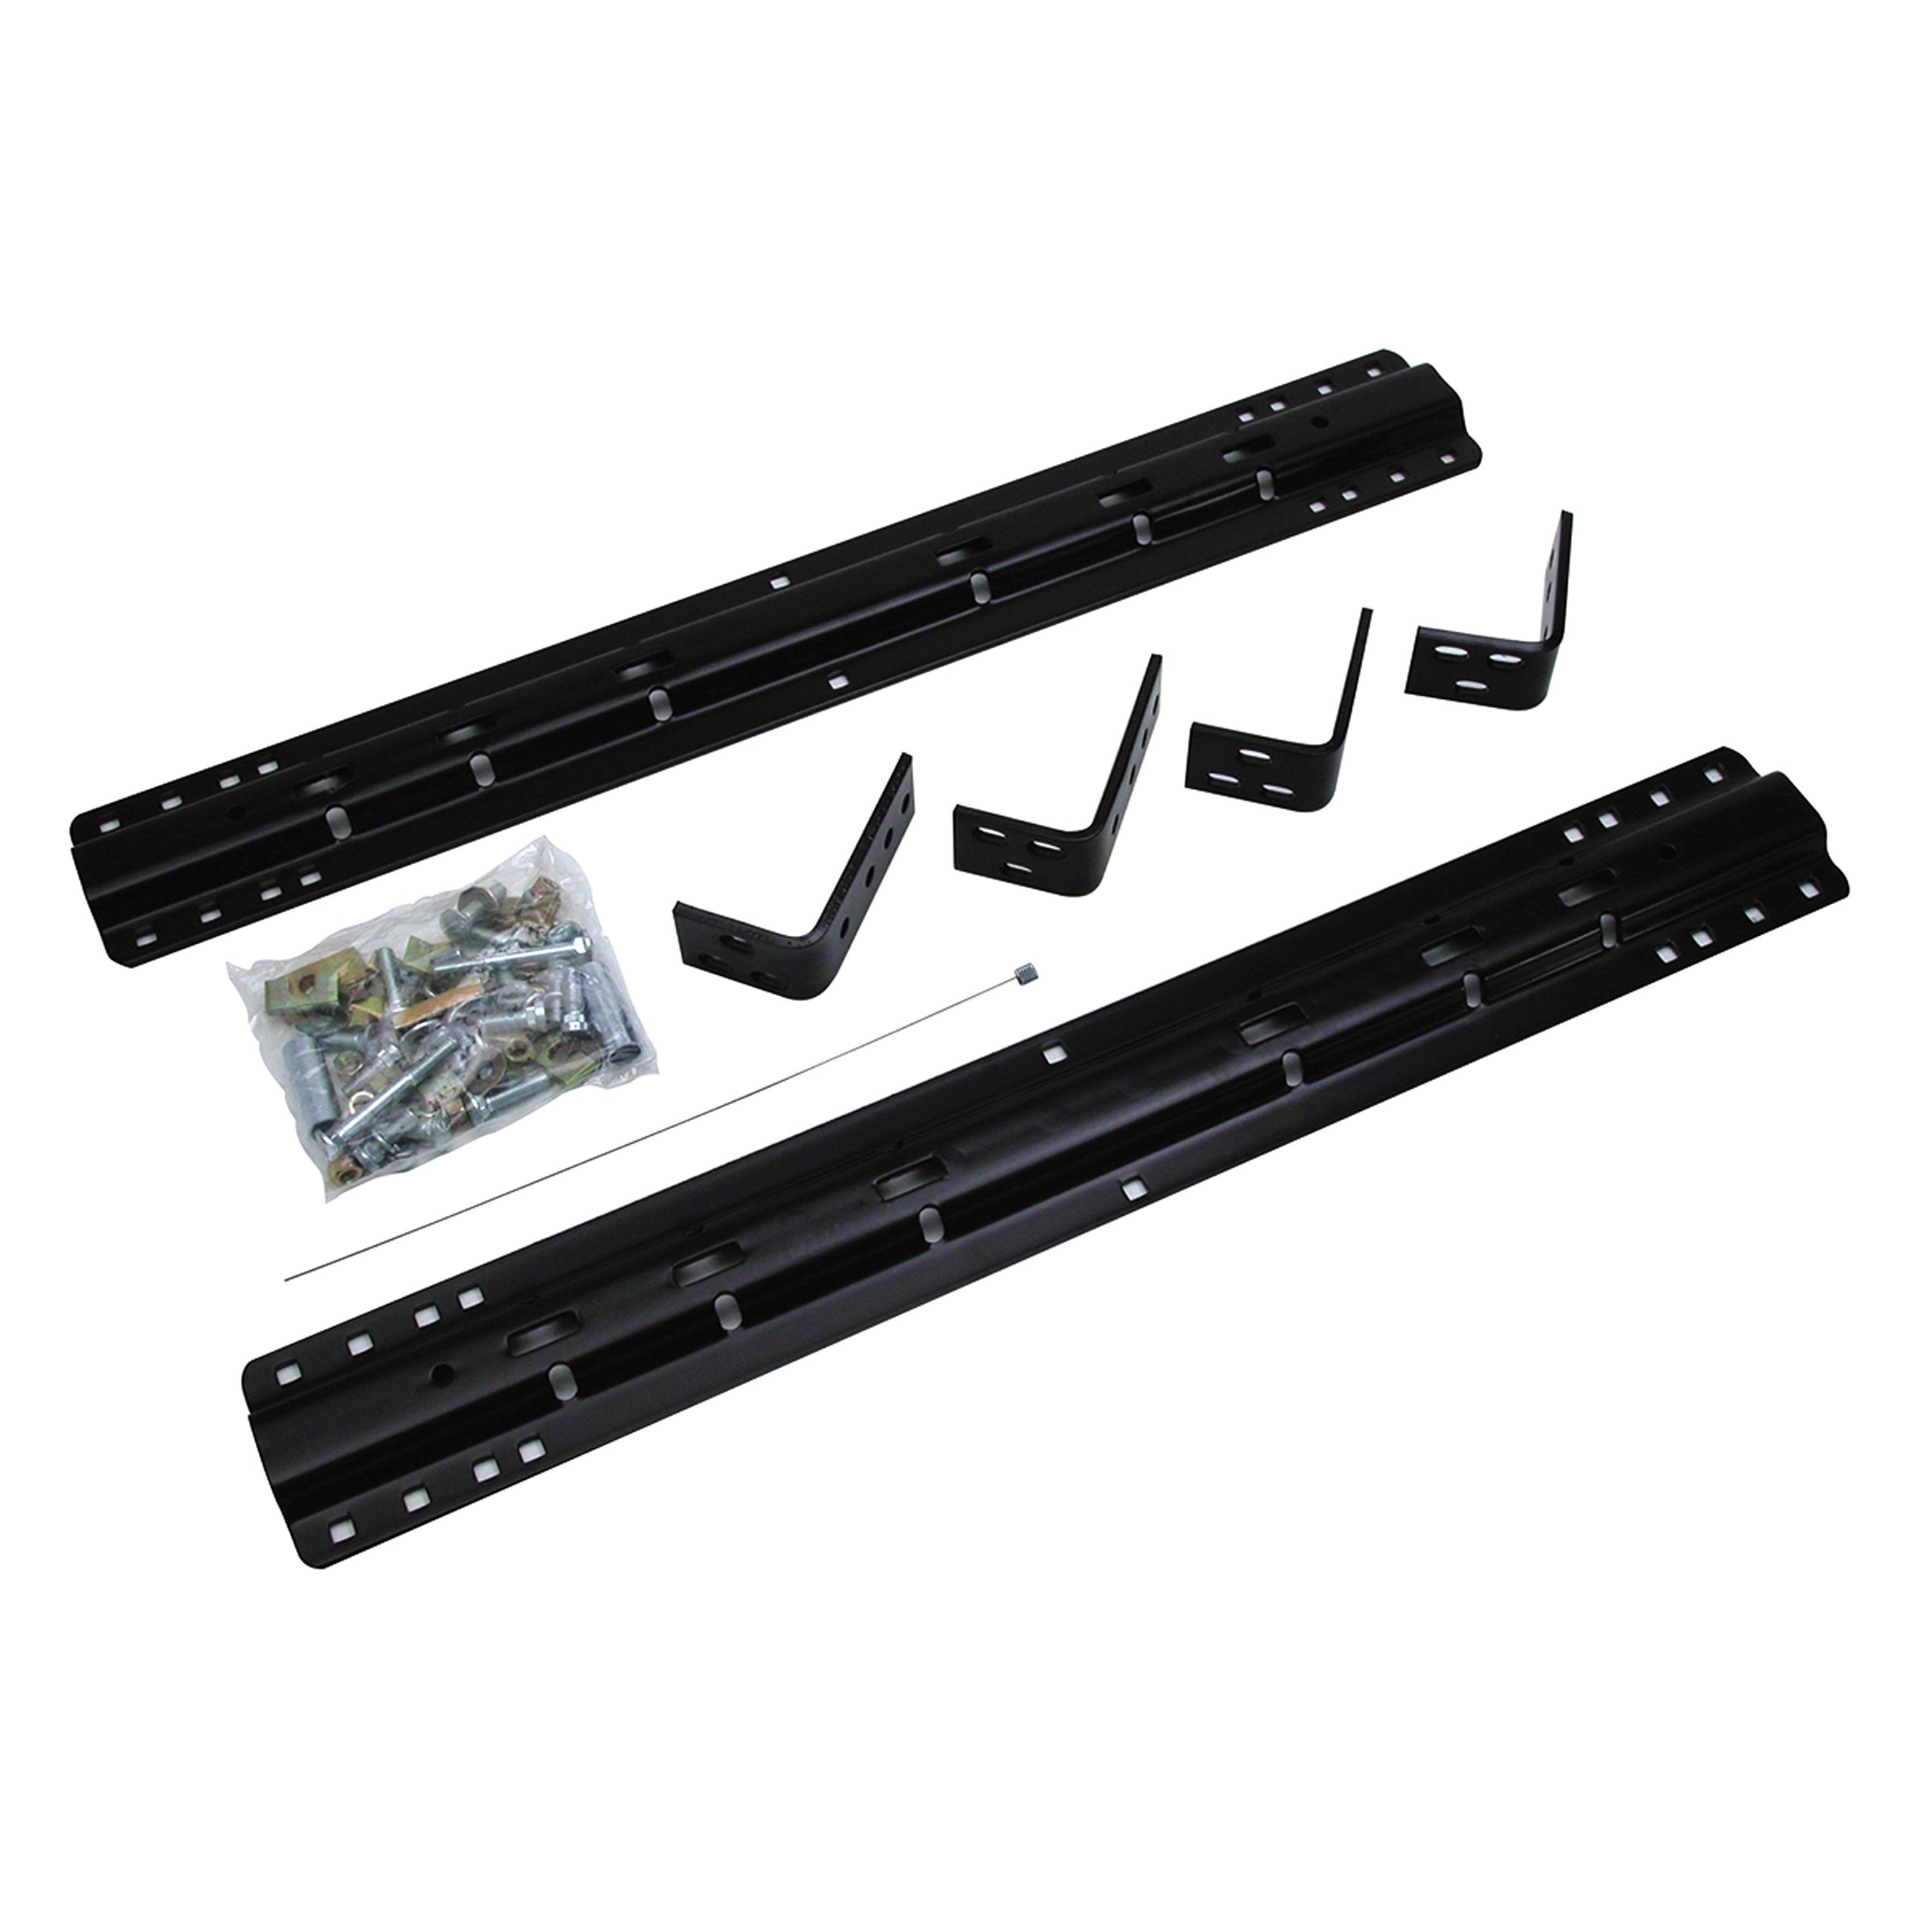 Reese Towpower 30035 20K Fifth Wheel Rail Kit by Reese Towpower